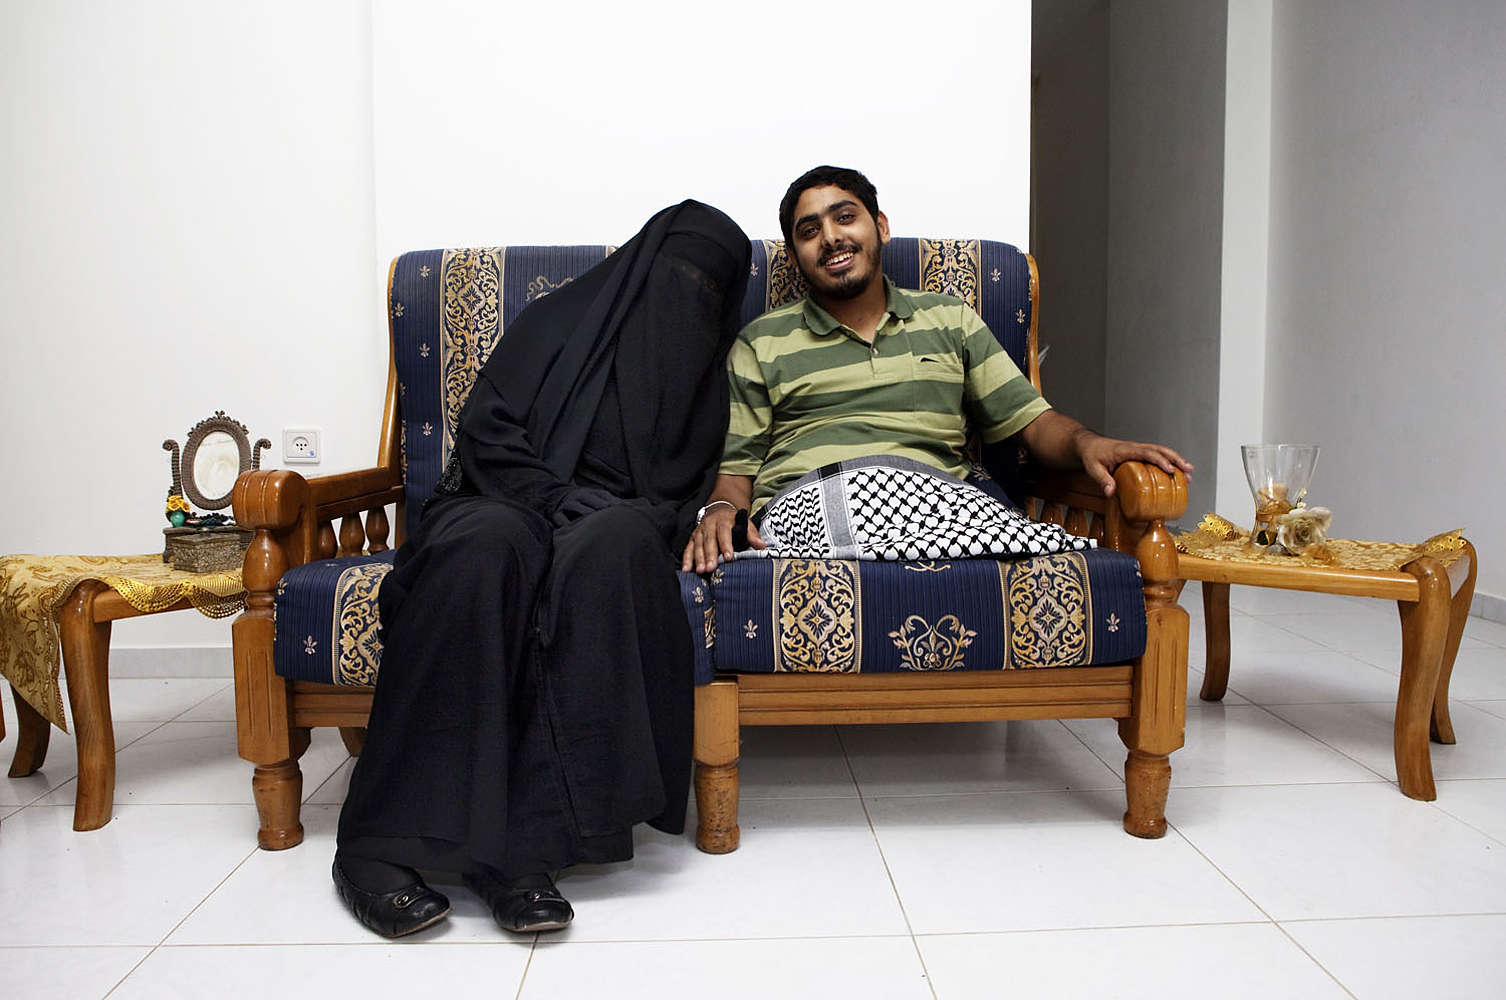 Deema Aydieh, 20, and Moemen Faiz, 21, sit together at their home donated by an Islamic charity in Saudia Arabia. Aydieh, a photographer, lost both his legs during an Israeli attack of Gaza in 2008.